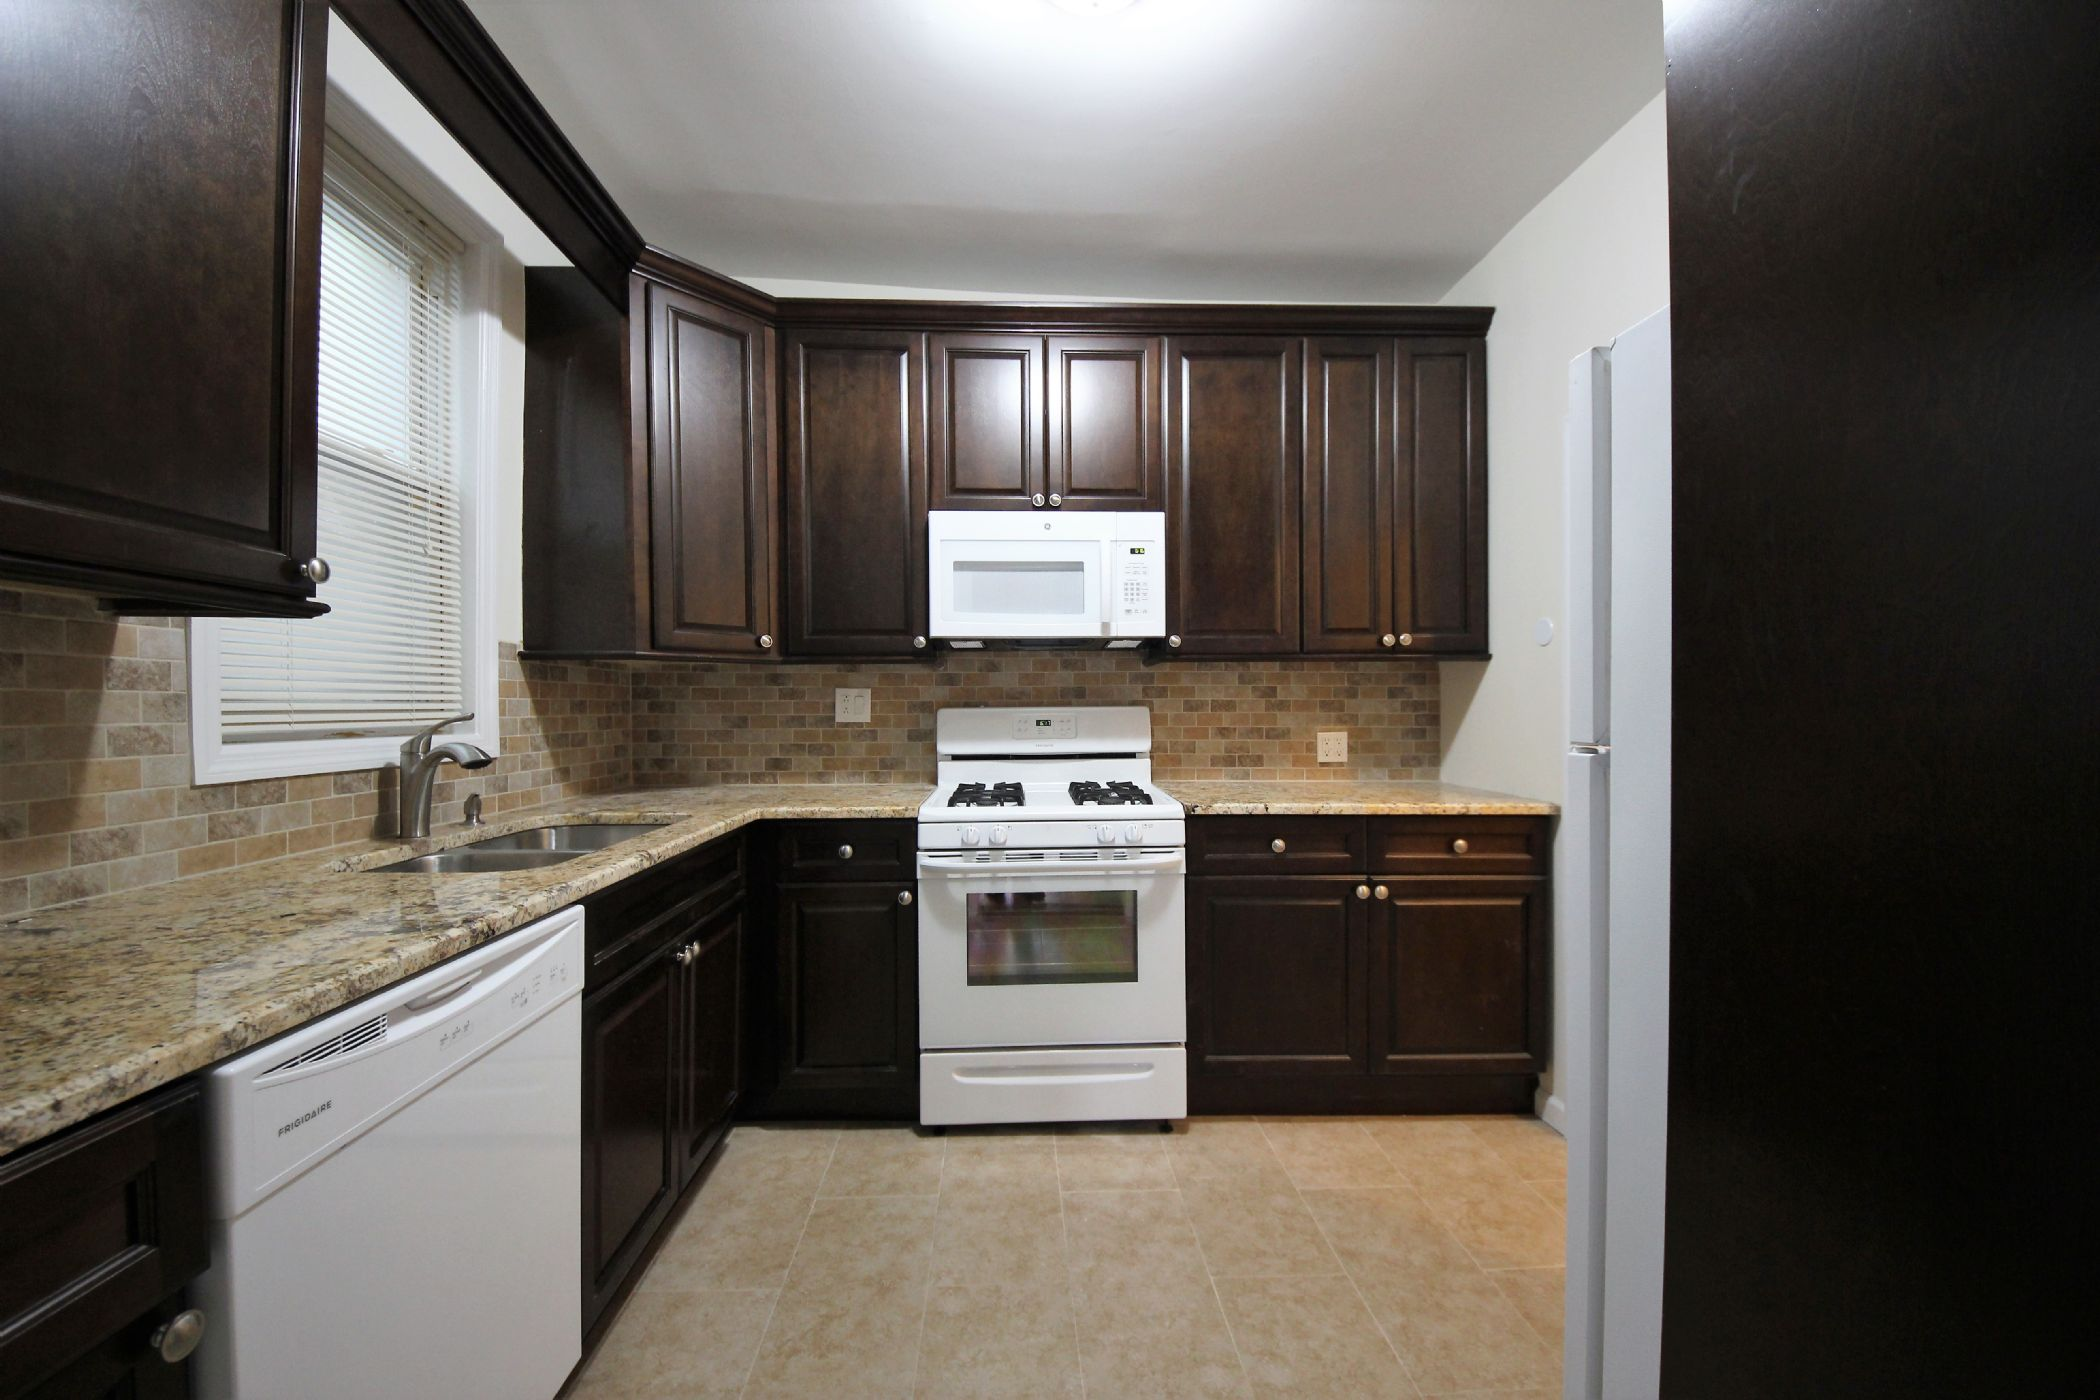 Brooklyn Home, NY Real Estate Listing